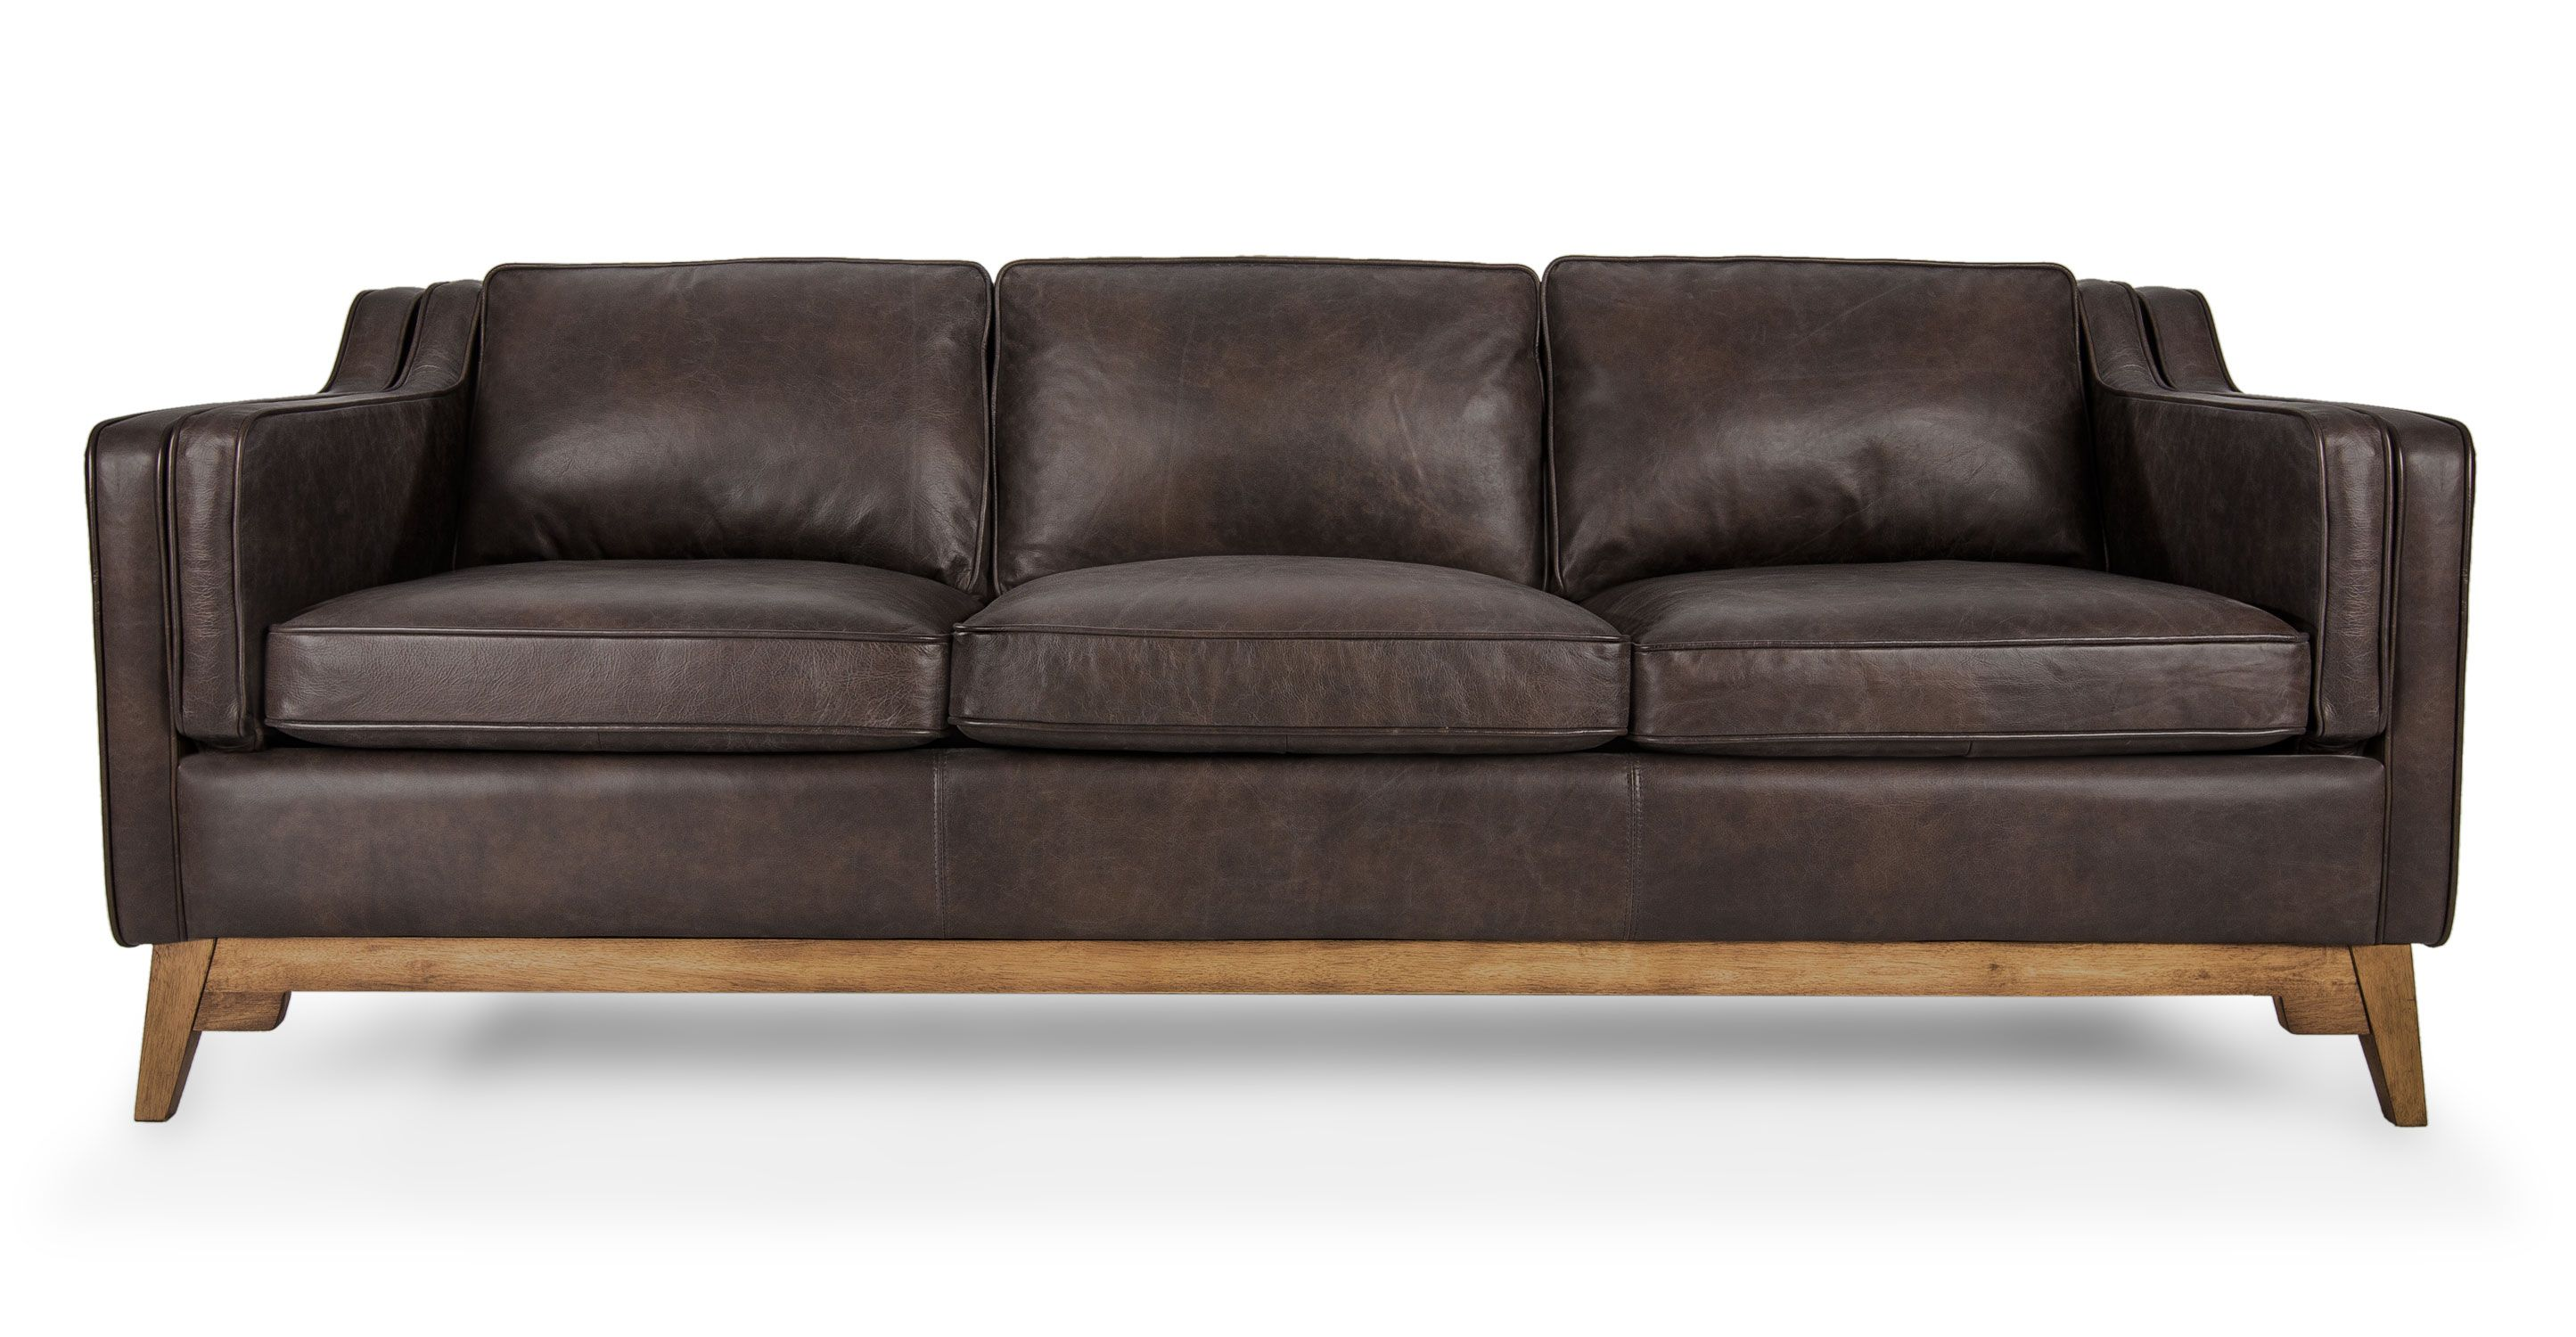 Best Worthington Oxford Brown Sofa Black Sofa Leather Sofa 400 x 300